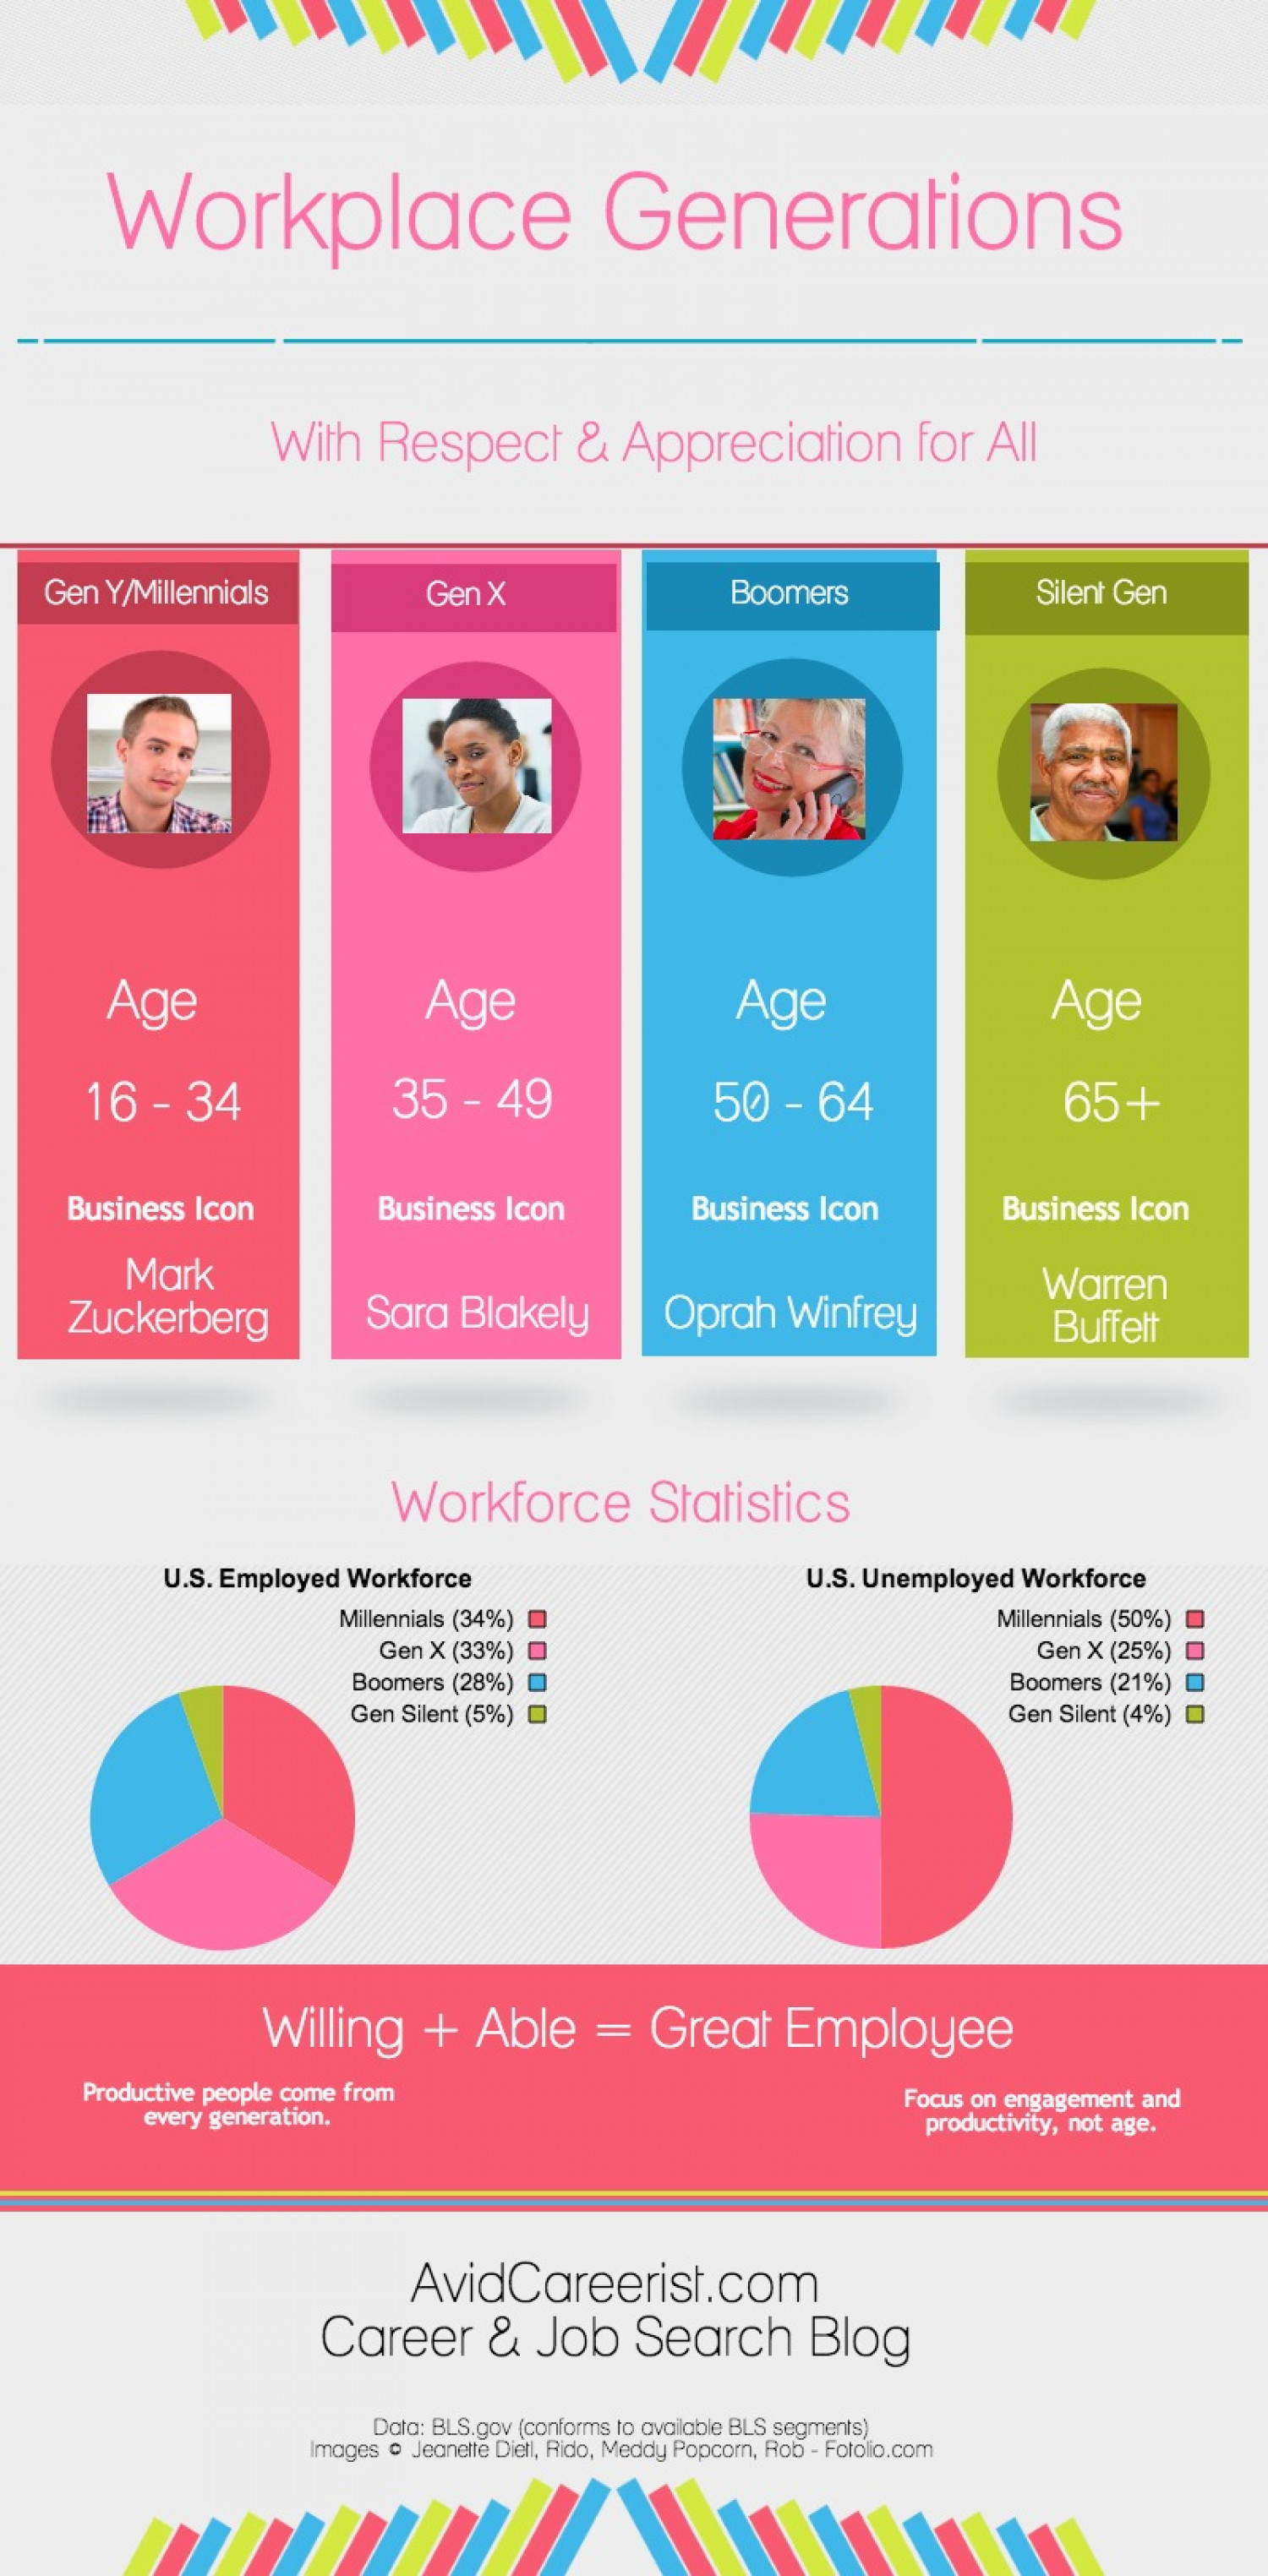 HOW TO: Keep Track of Gen X and Gen Y Infographic